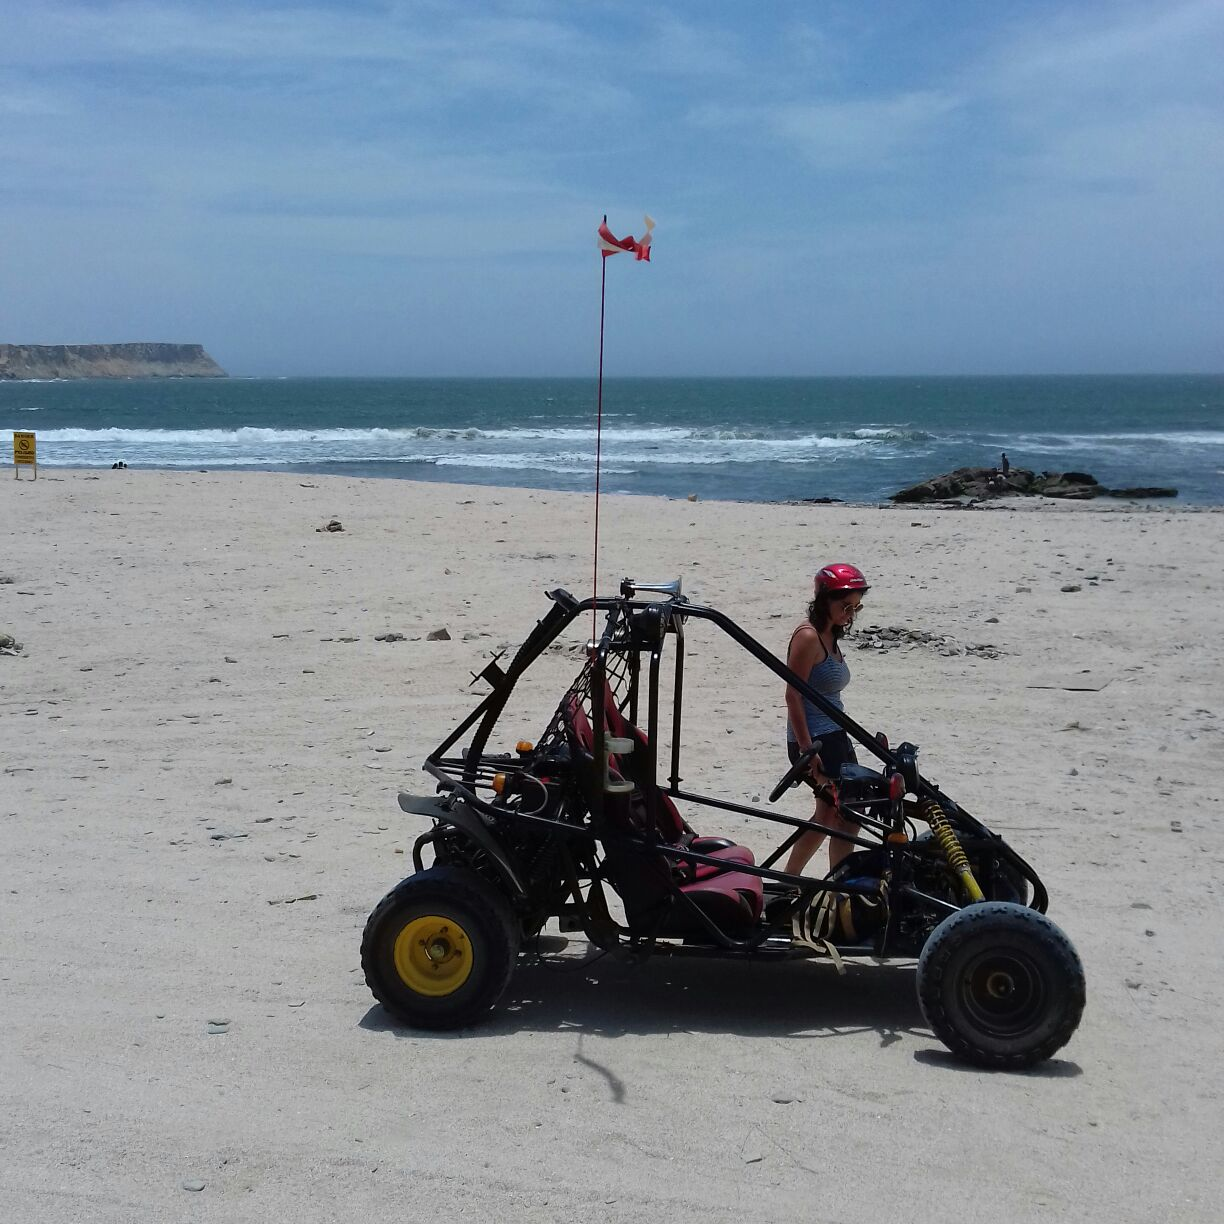 A woman standing by a buggy on a beach